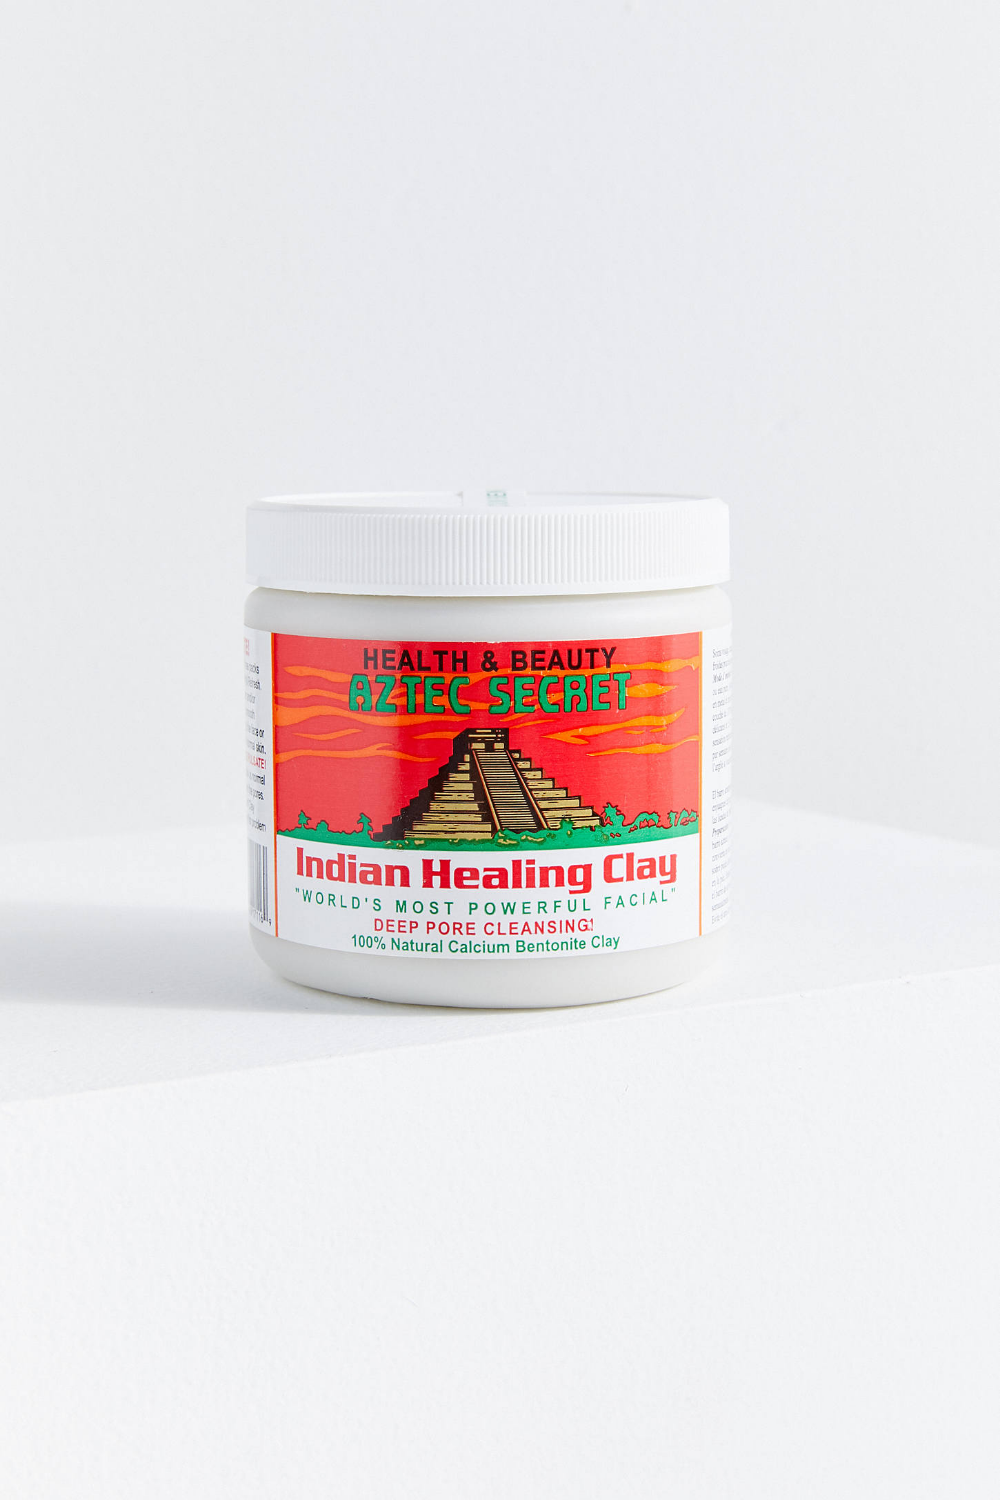 Aztec Secret Indian Healing Clay 1 Lb Deep Pore Cleansing Facial Body Mask In 2020 Aztec Clay Mask Healing Clay Aztec Clay